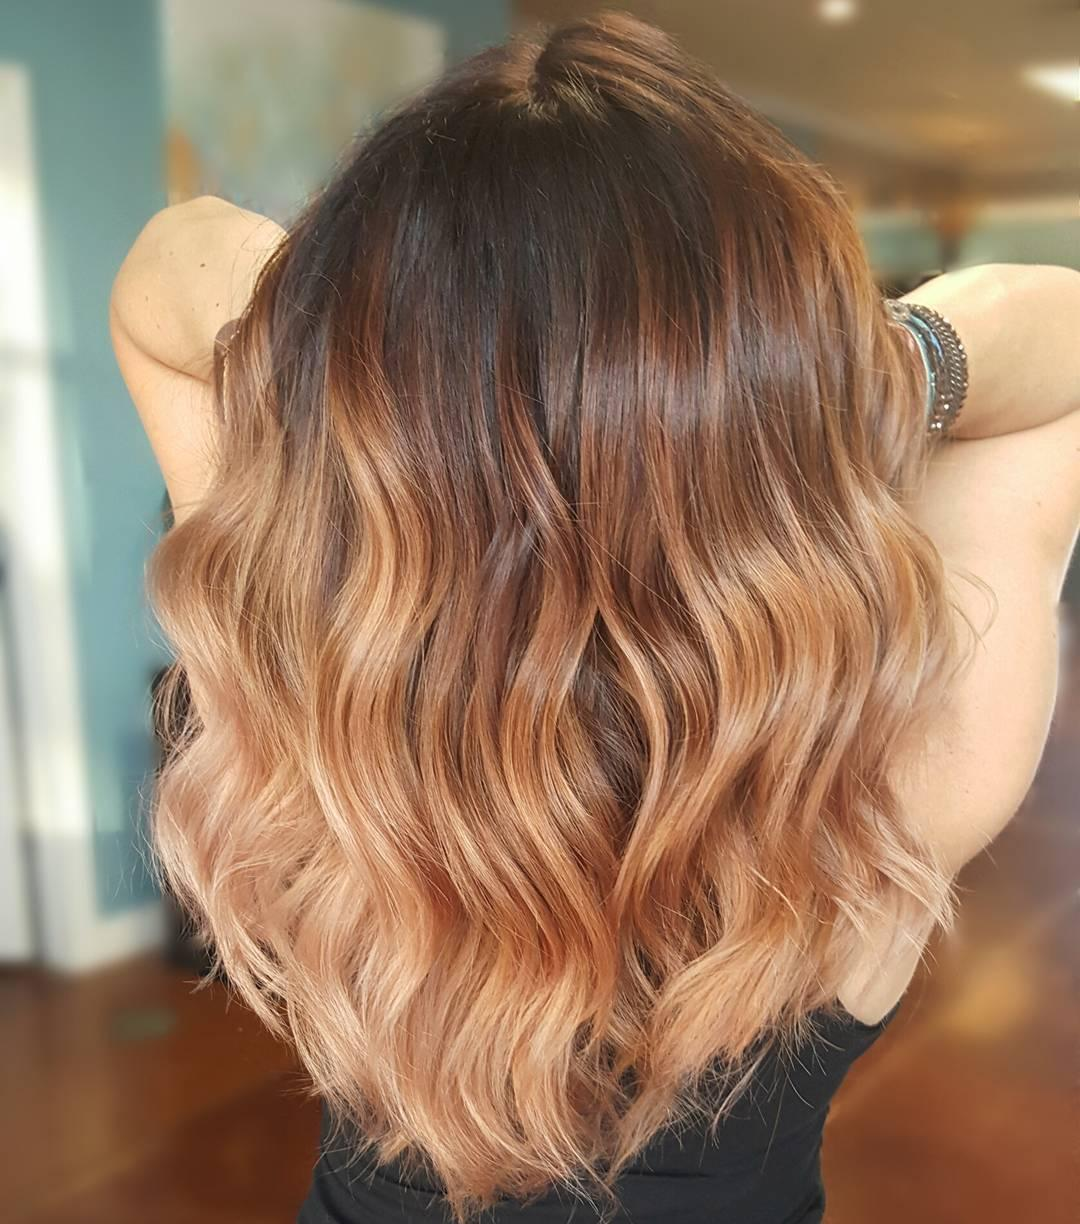 Back of woman's head with dark roots and caramel blonde hair styled with loose waves